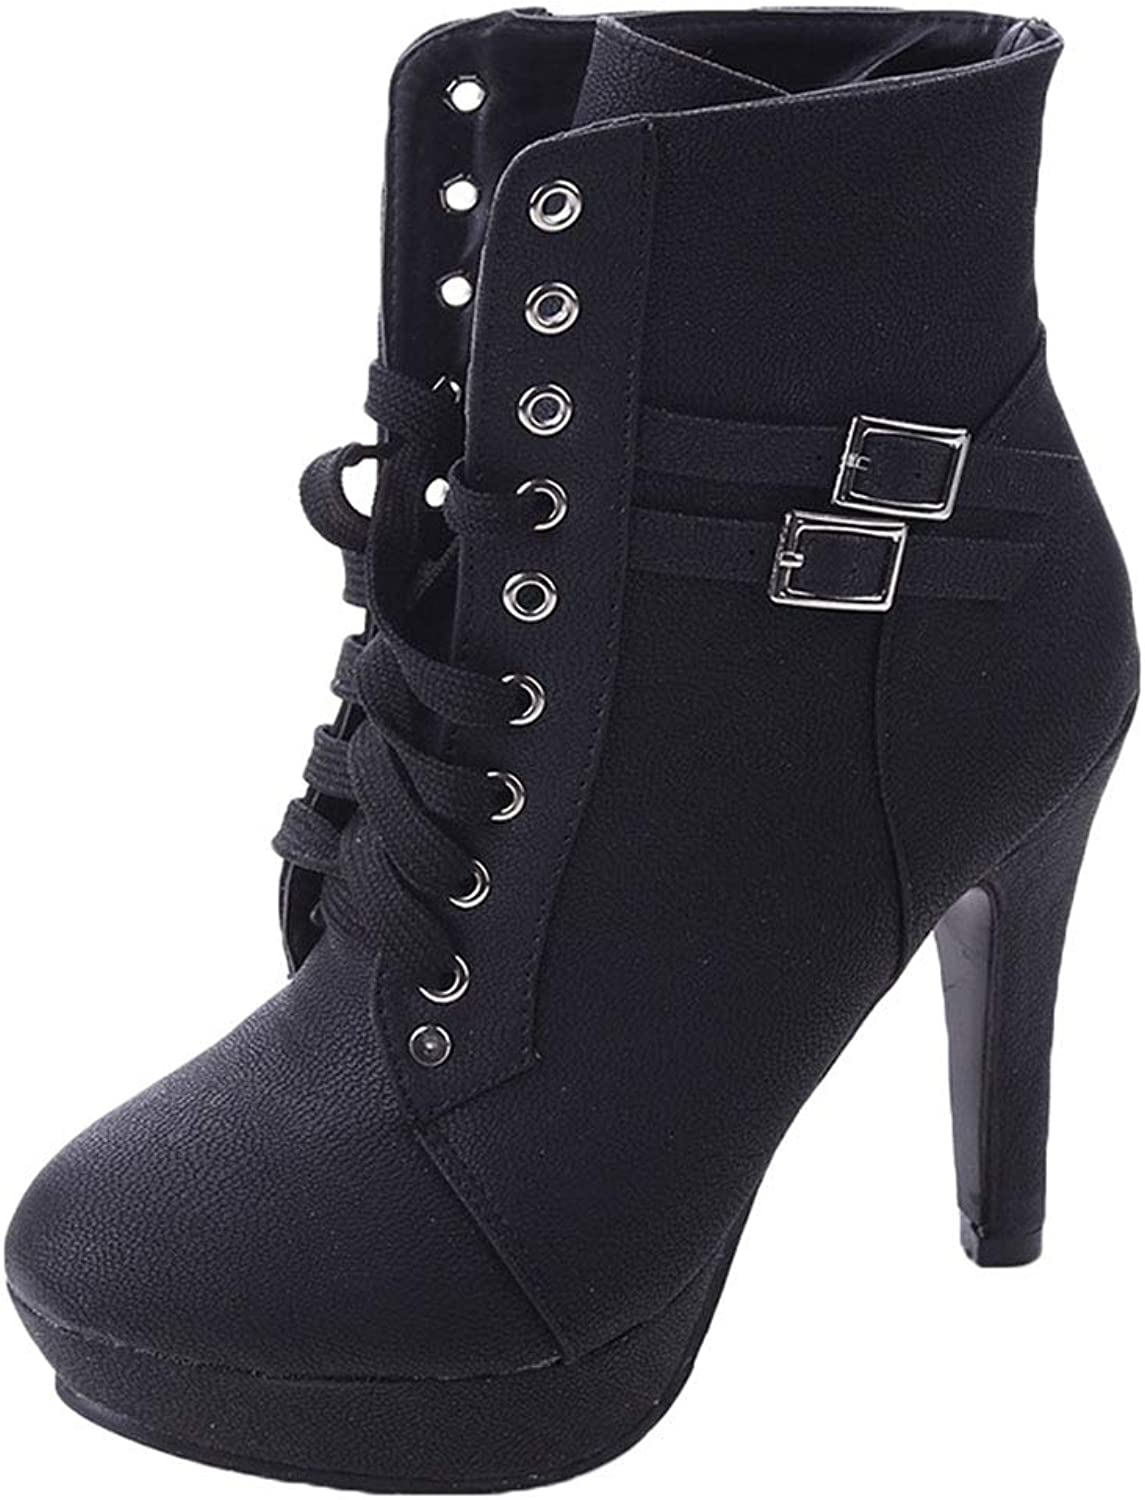 ONCEFIRST Women's Platform Boots Lace Up High Heel Bootie